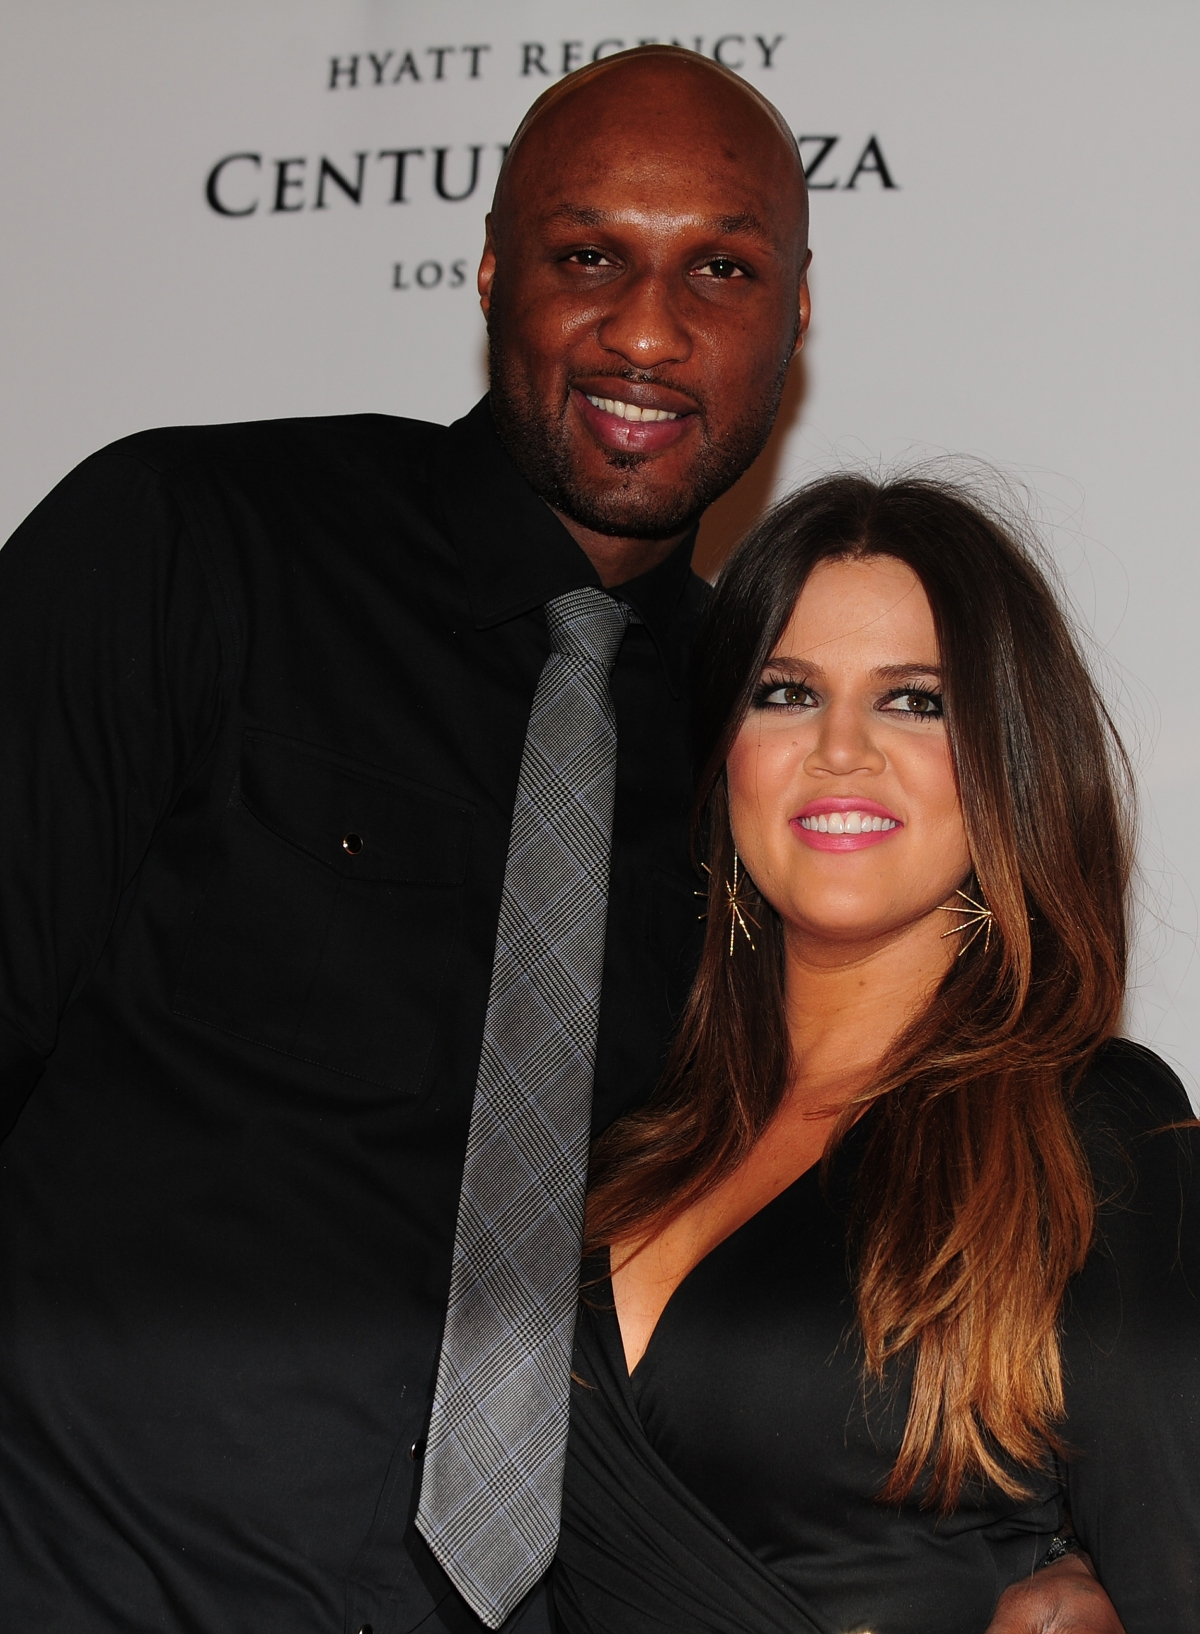 Is lamar odom dating khloe kardashian